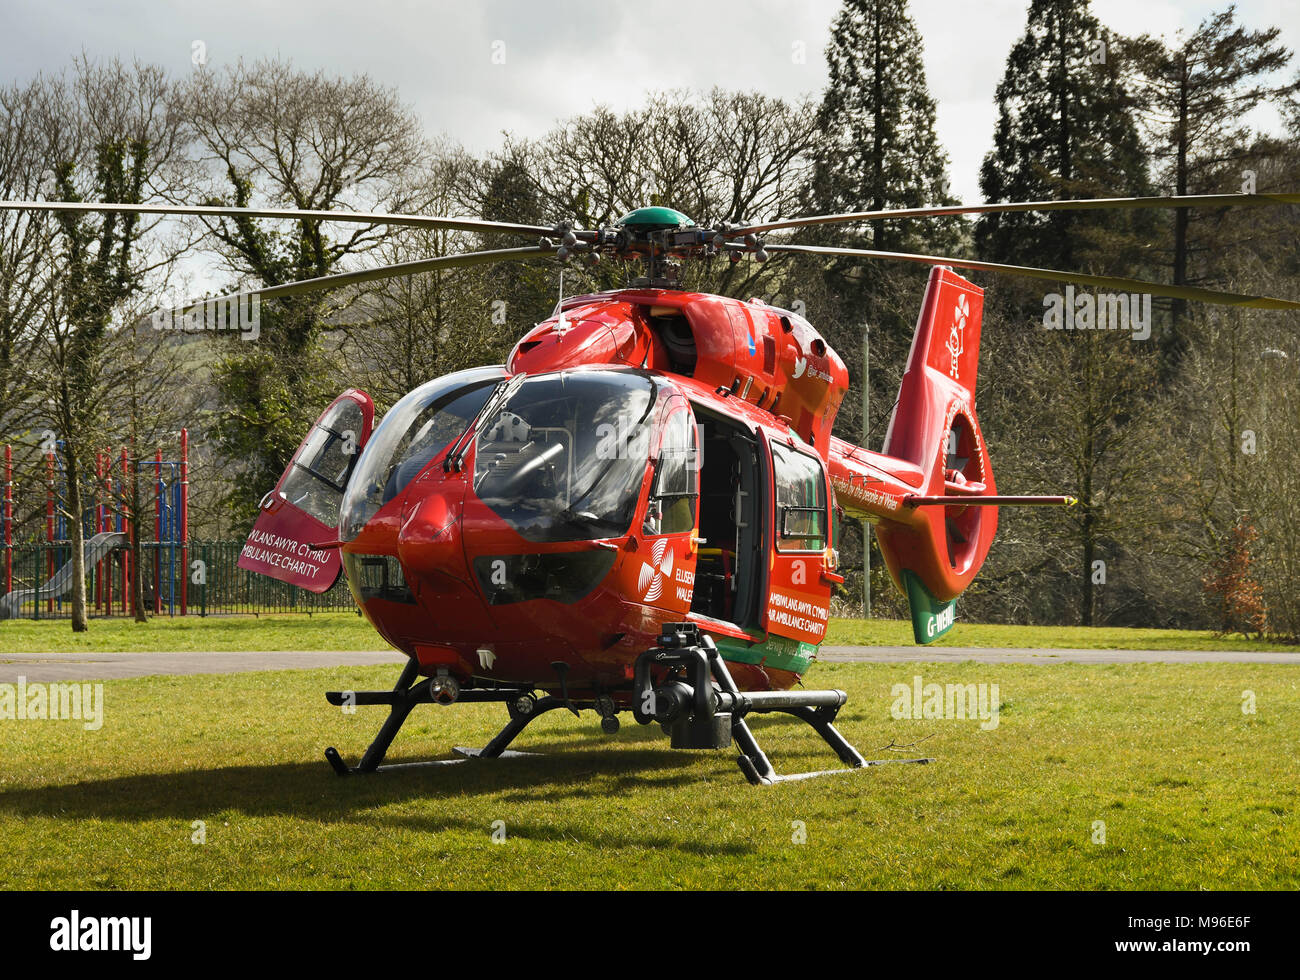 Airbus helicopter of the Wales Air Ambulance service on the ground during an emergency mission Stock Photo